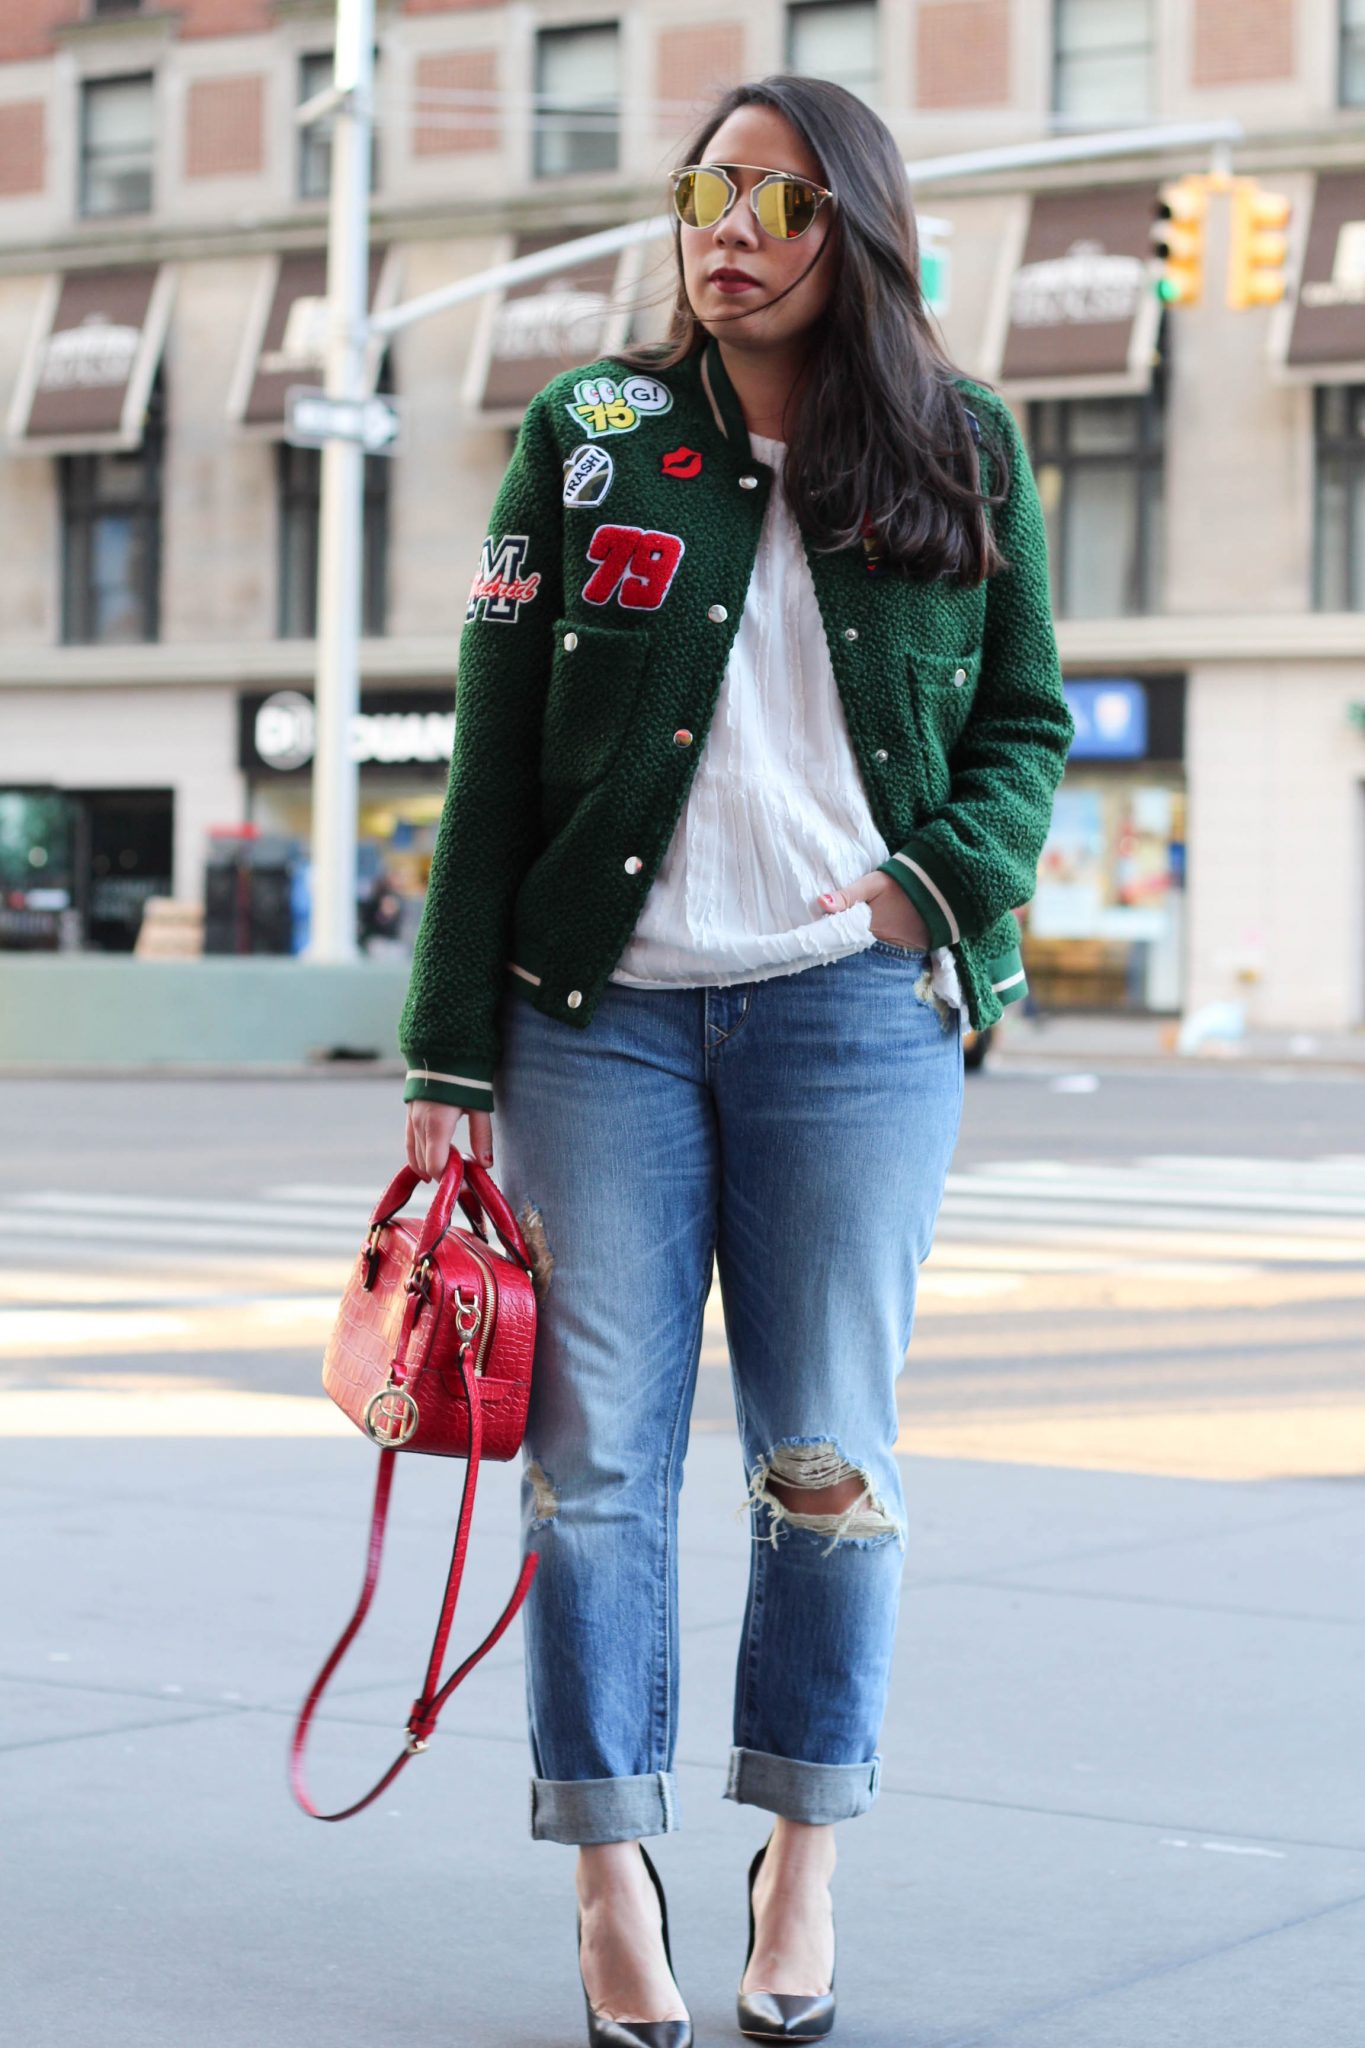 The Patched Bomber Jacket by popular New York fashion blogger Live Laugh Linda